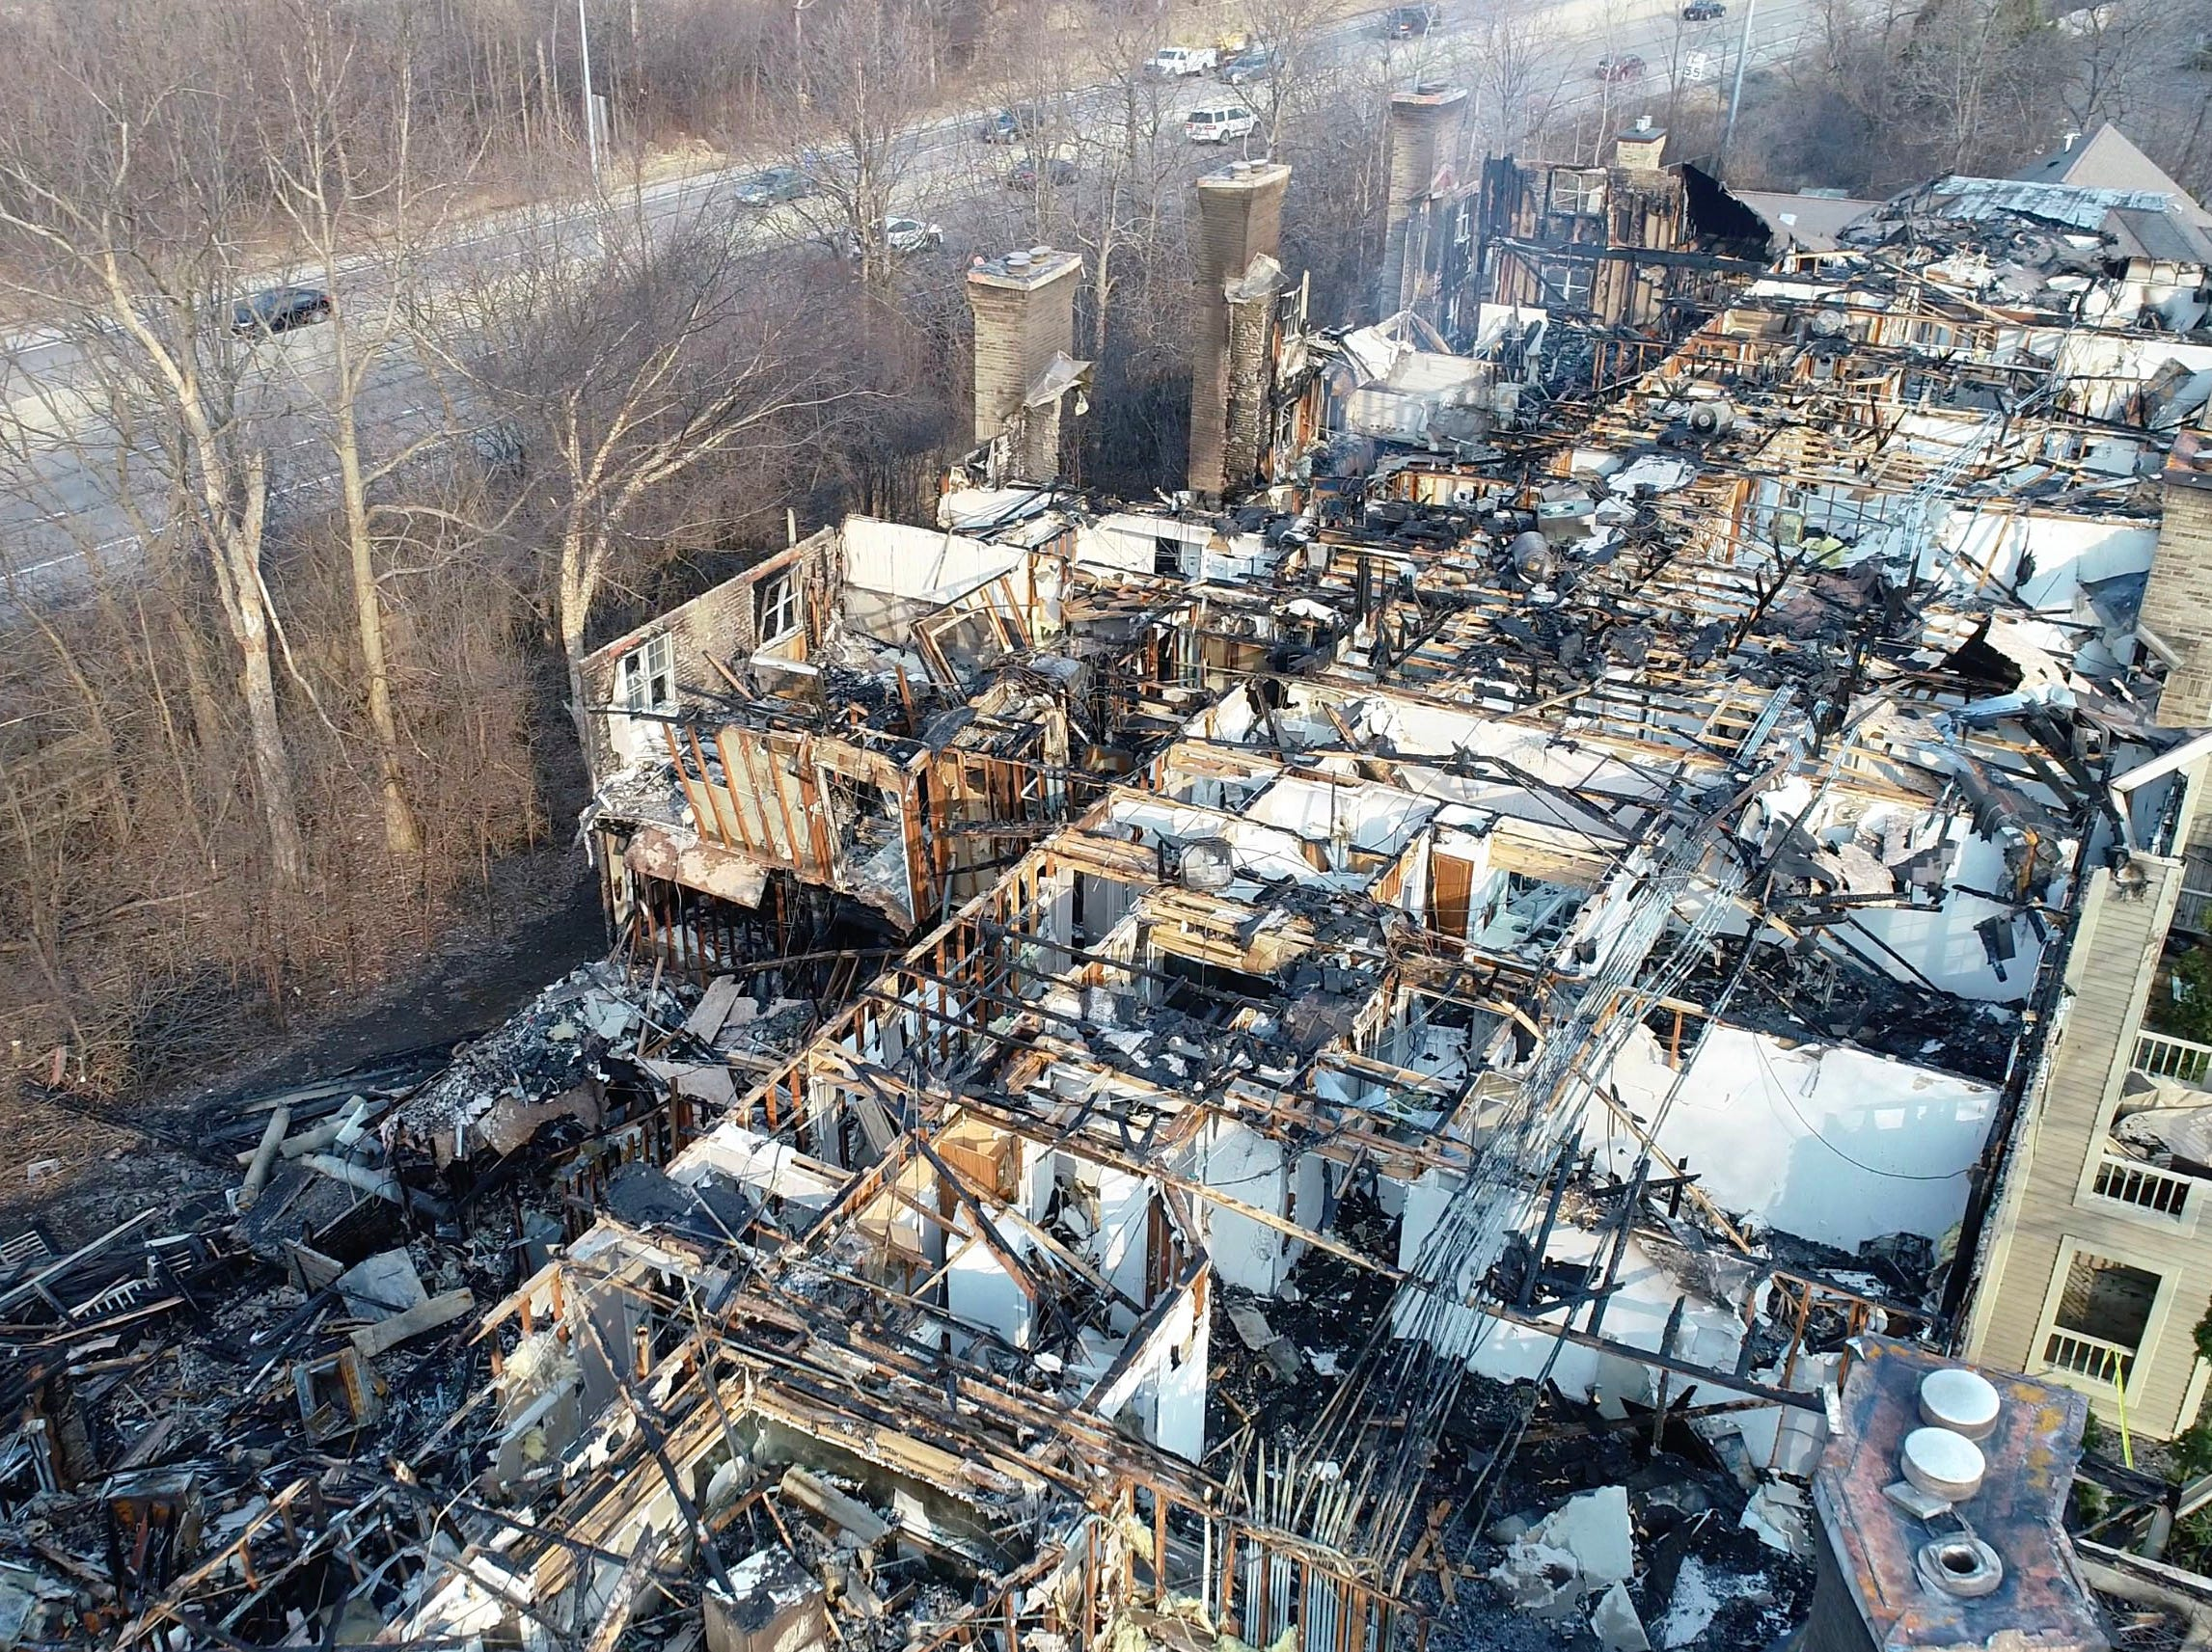 An aerial view from a drone shows the destruction from a fire at the White Oaks apartment complex, 9009 N. White Oak Lane, on Tuesday, April 2, 2019, in Bayside. The fire broke out around 12:15 a.m. Saturday, March 30.